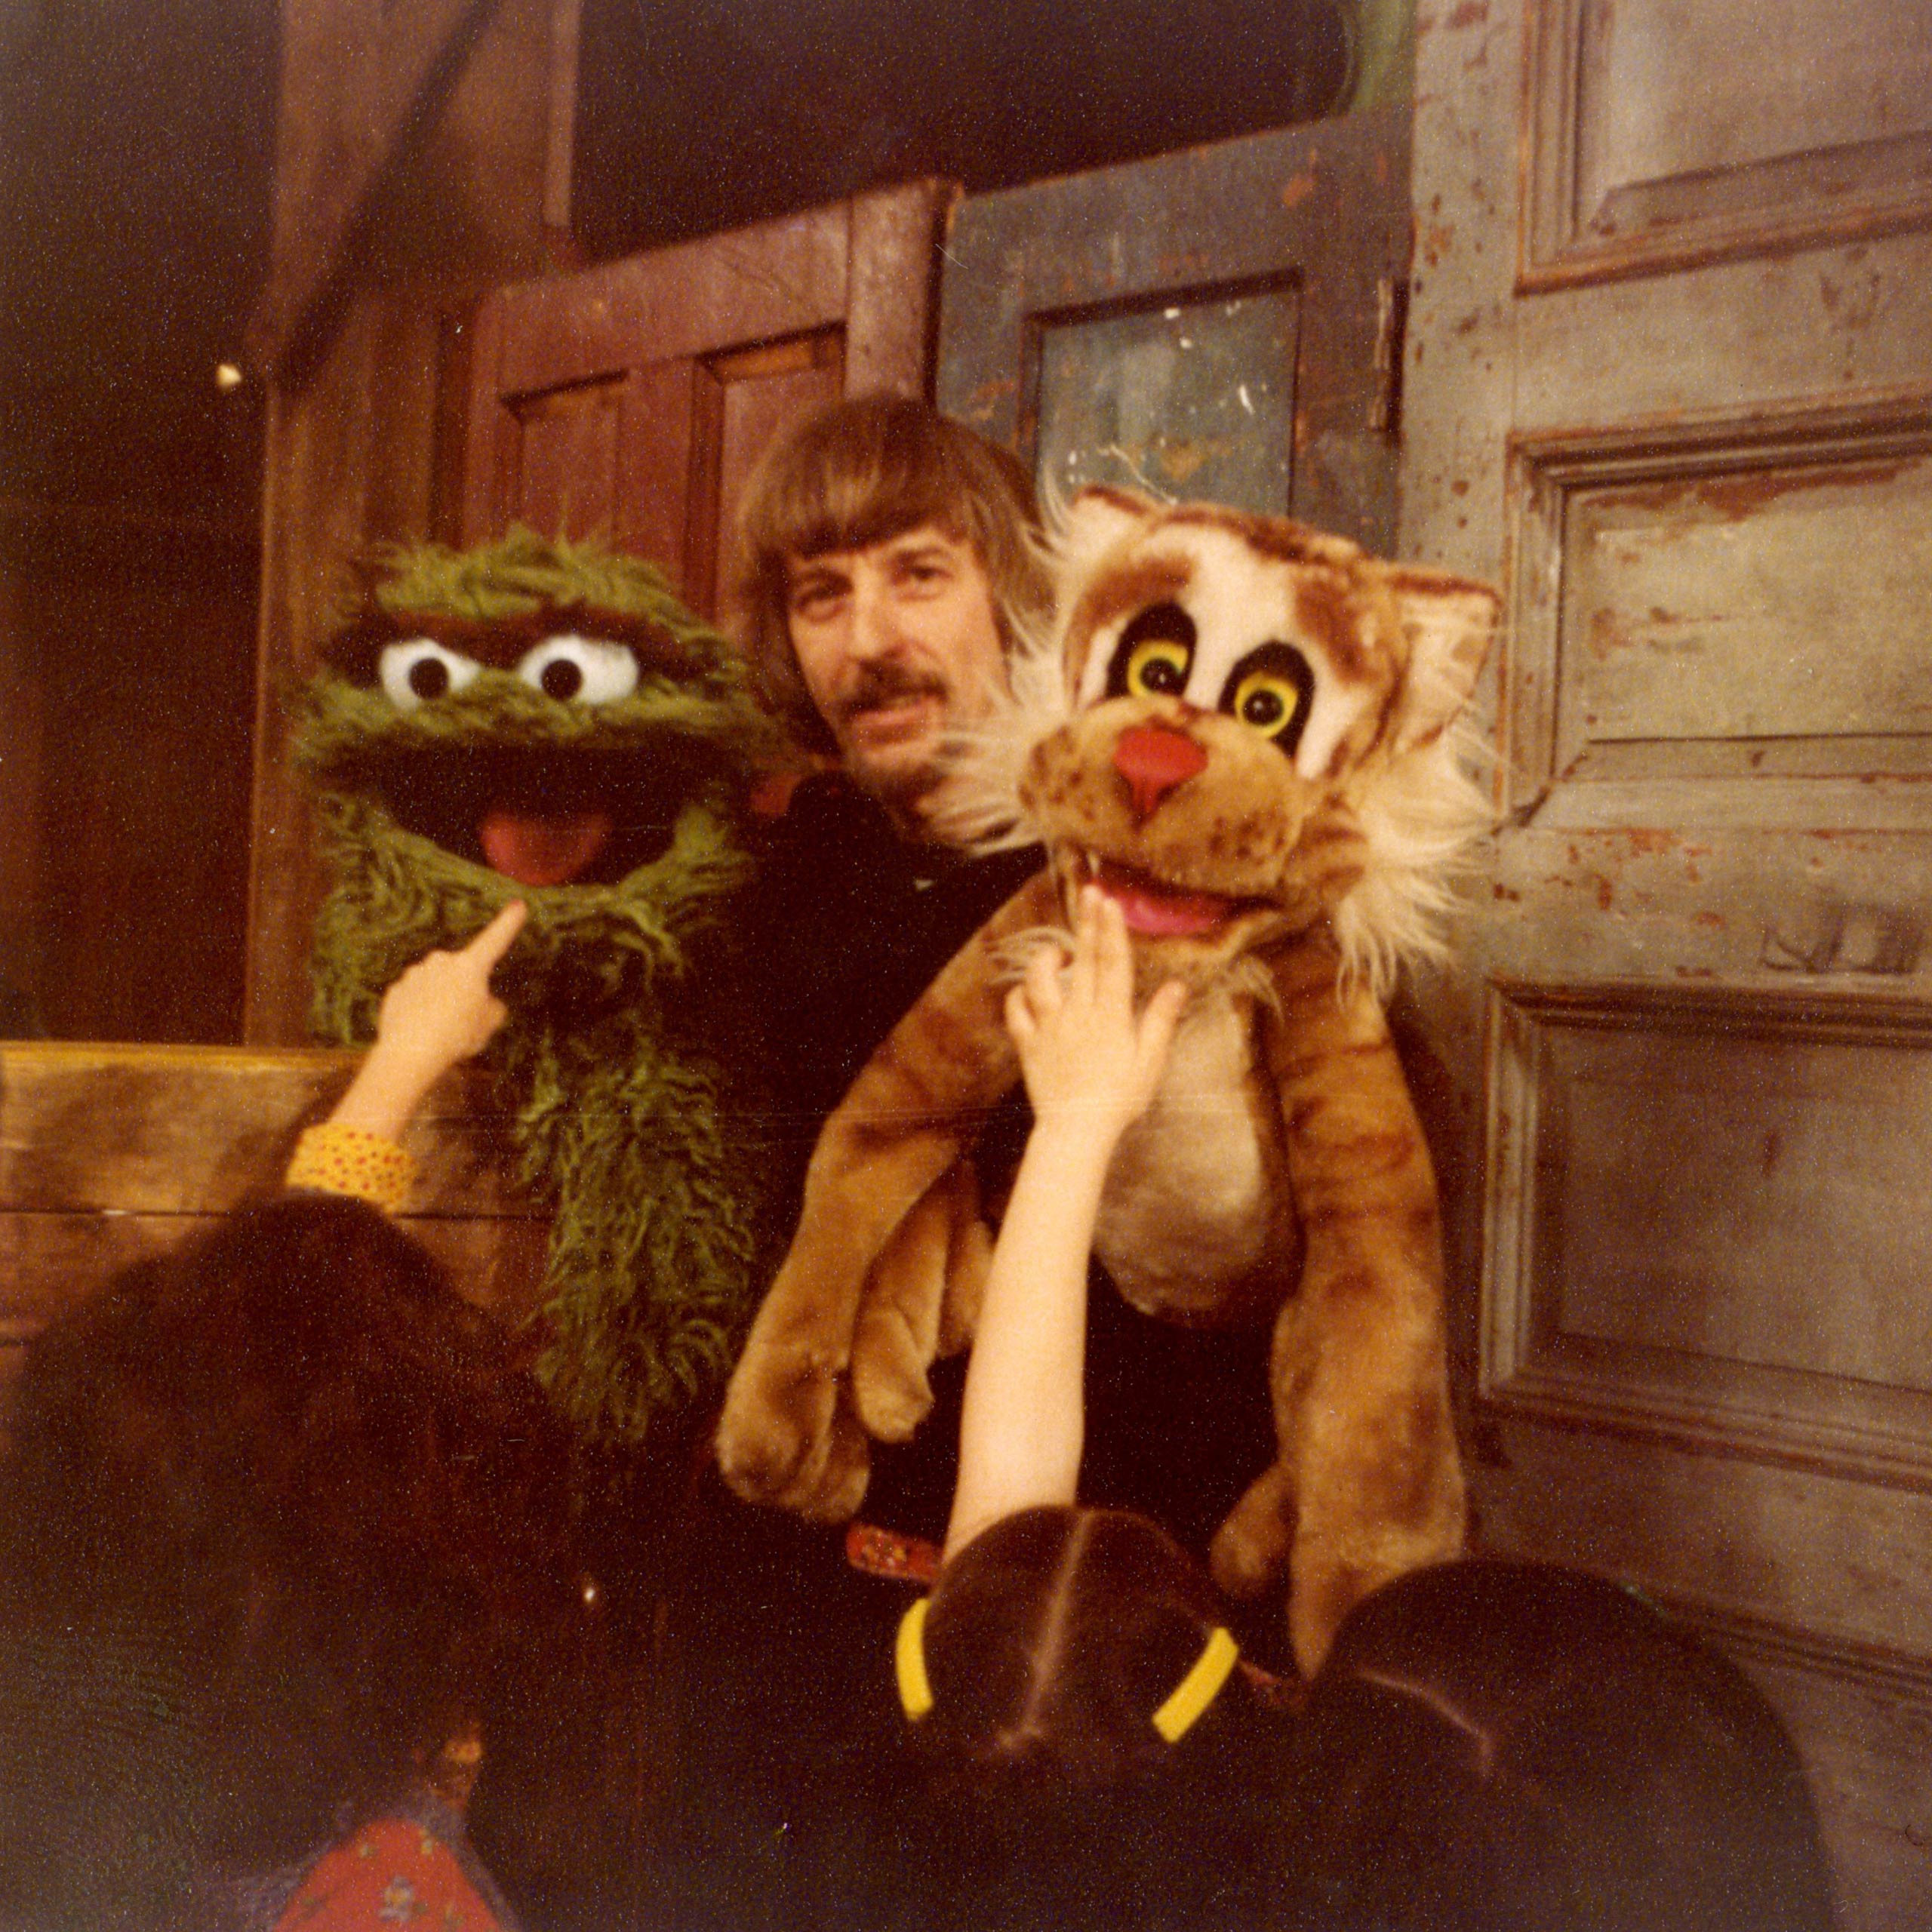 Caroll Spinney with Oscar the Grouch and Picklepuss, one of his first puppet creations.